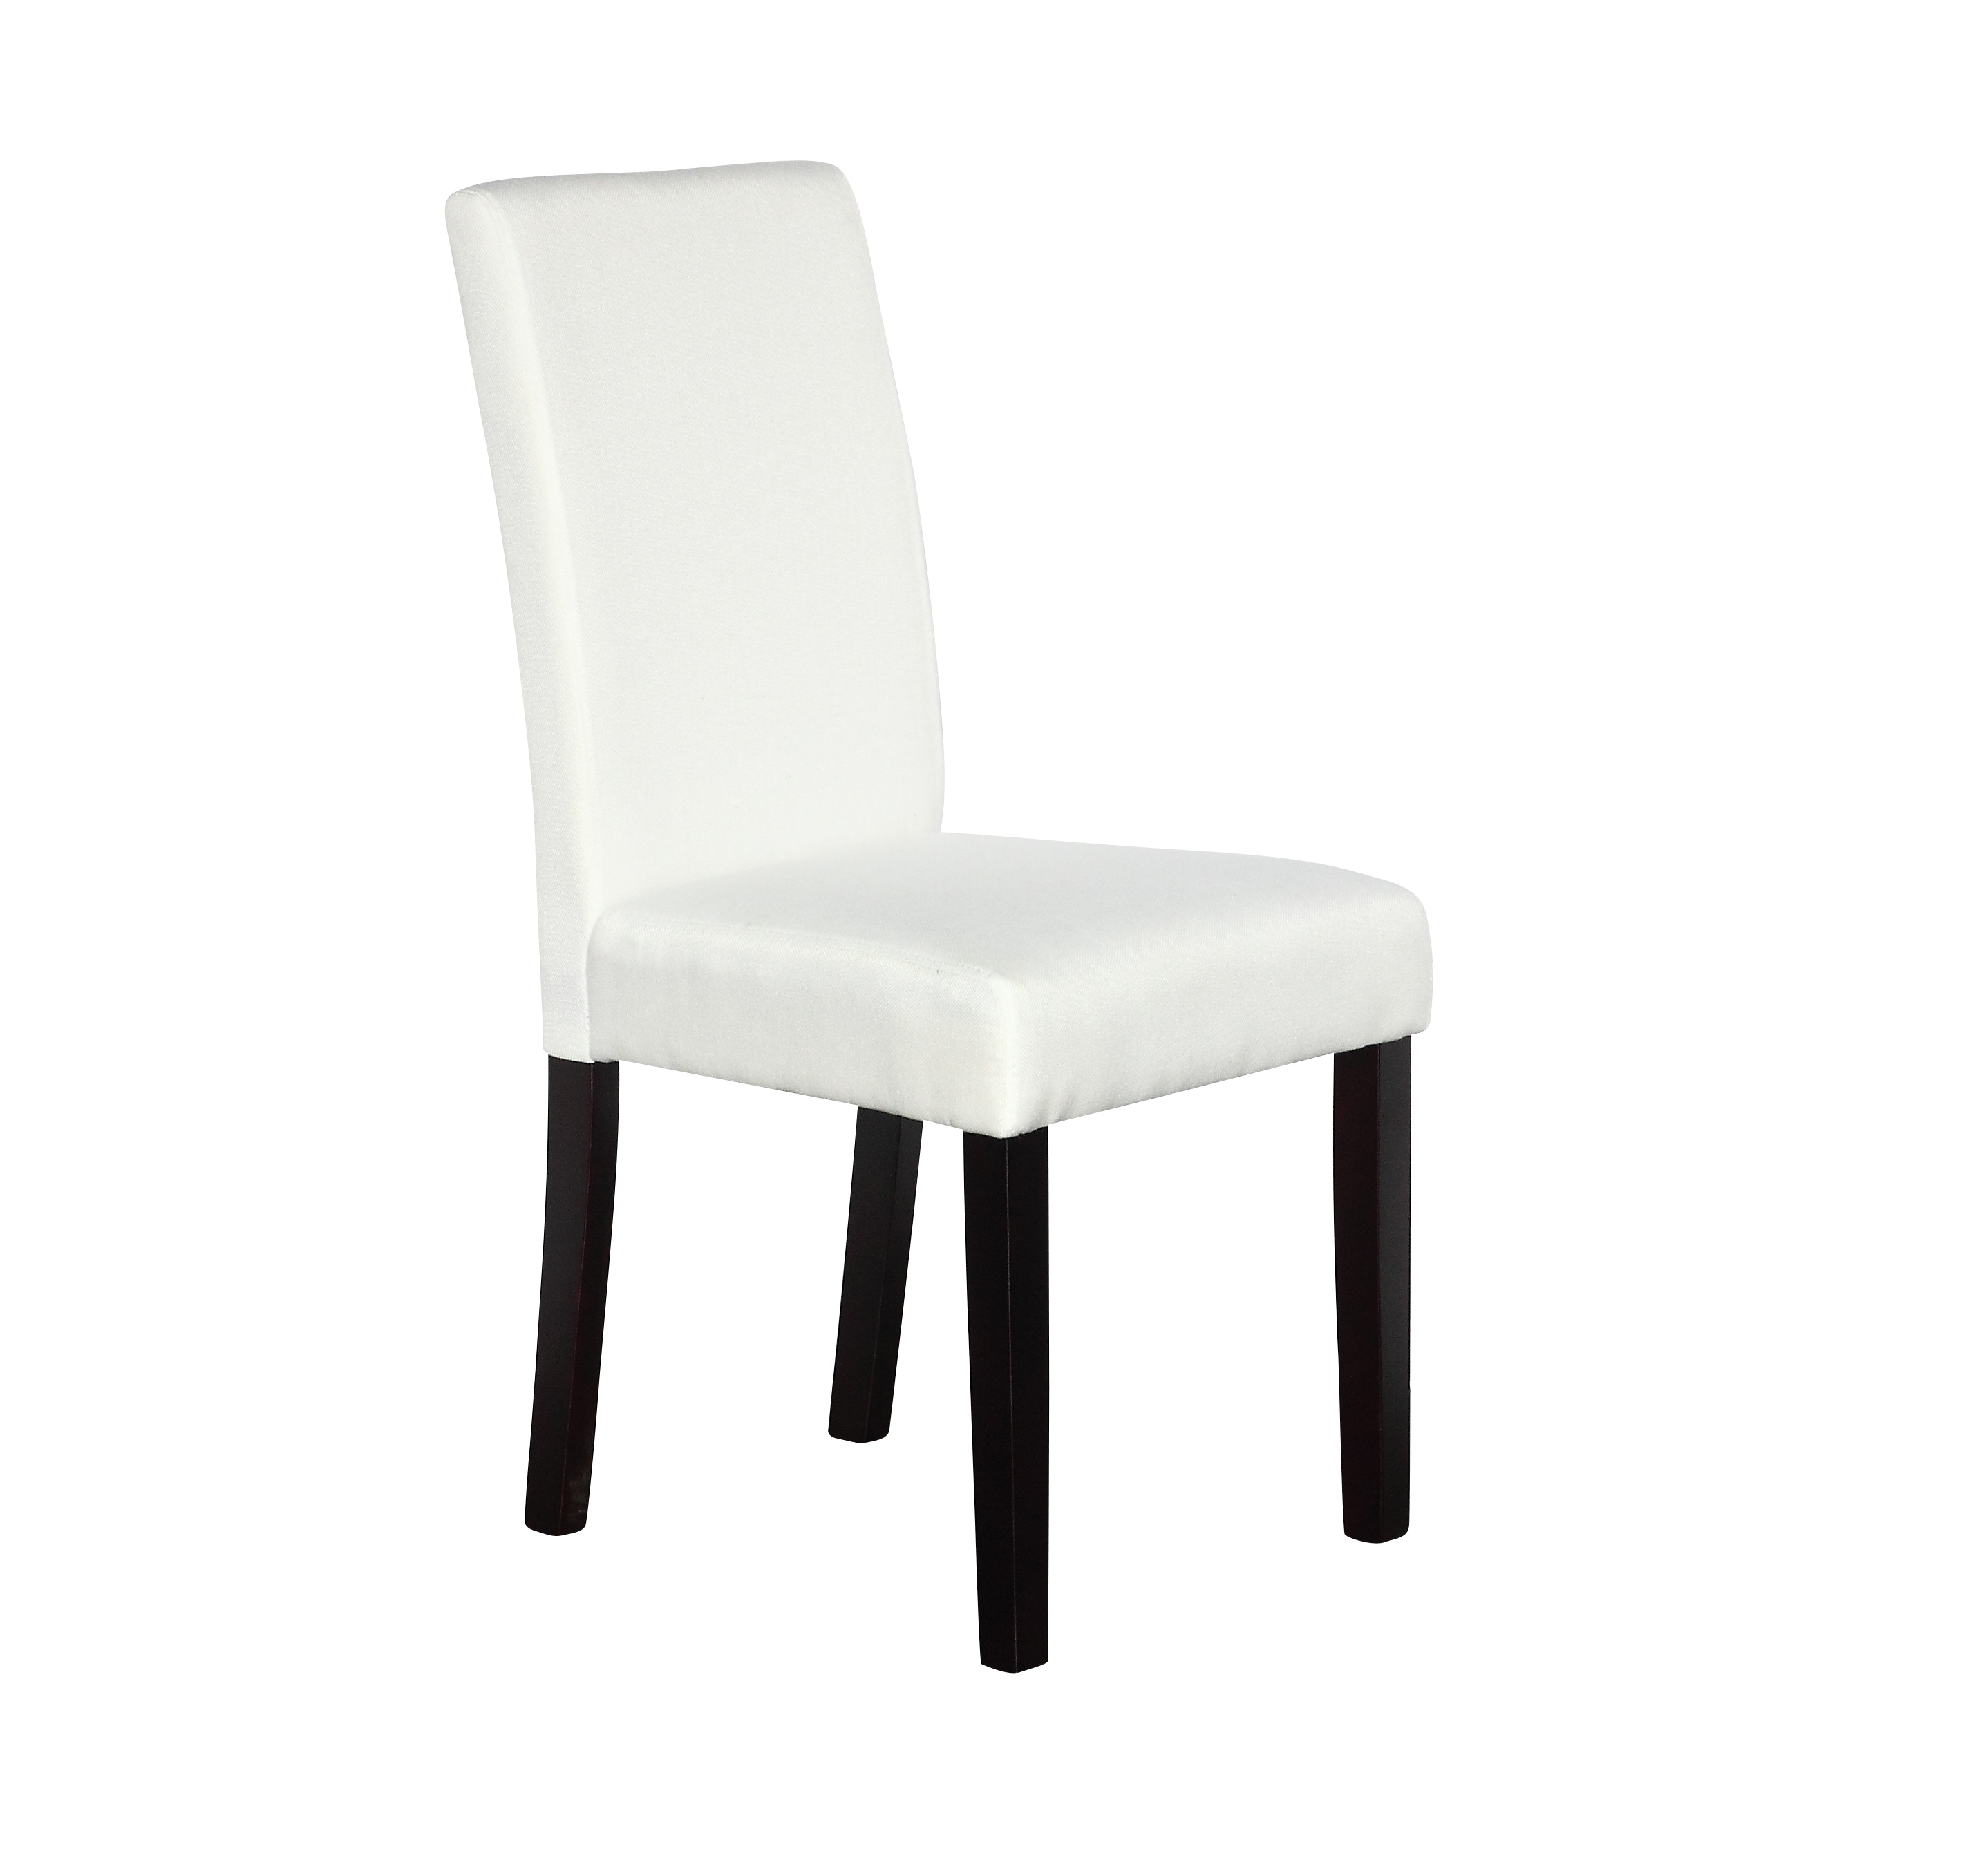 2 x Premium Fabric Linen Palermo Dining Chairs High Back - White  Z2721